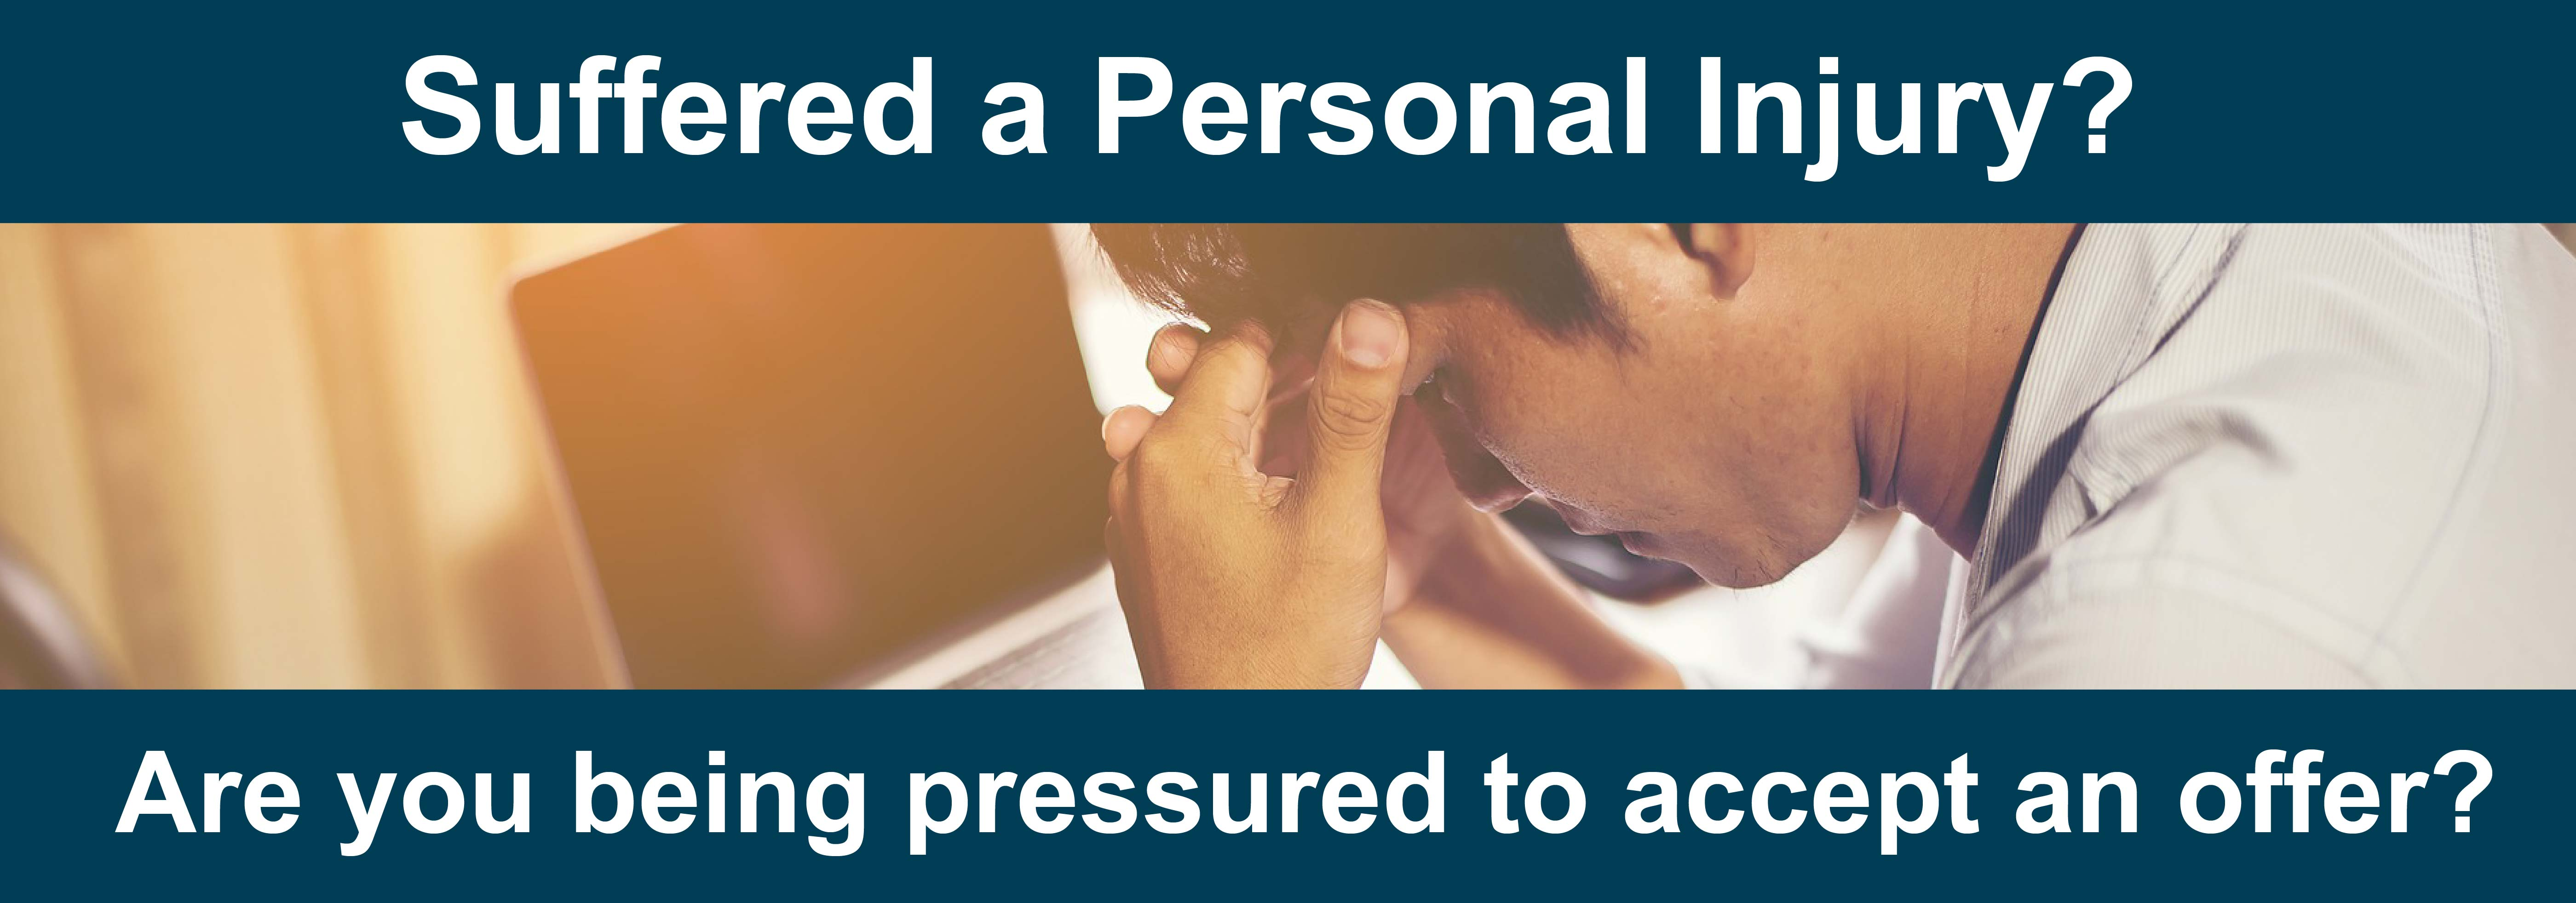 Suffered A Personal Injury Are You Being Pressured To Accept An Offer Newnham Jordan